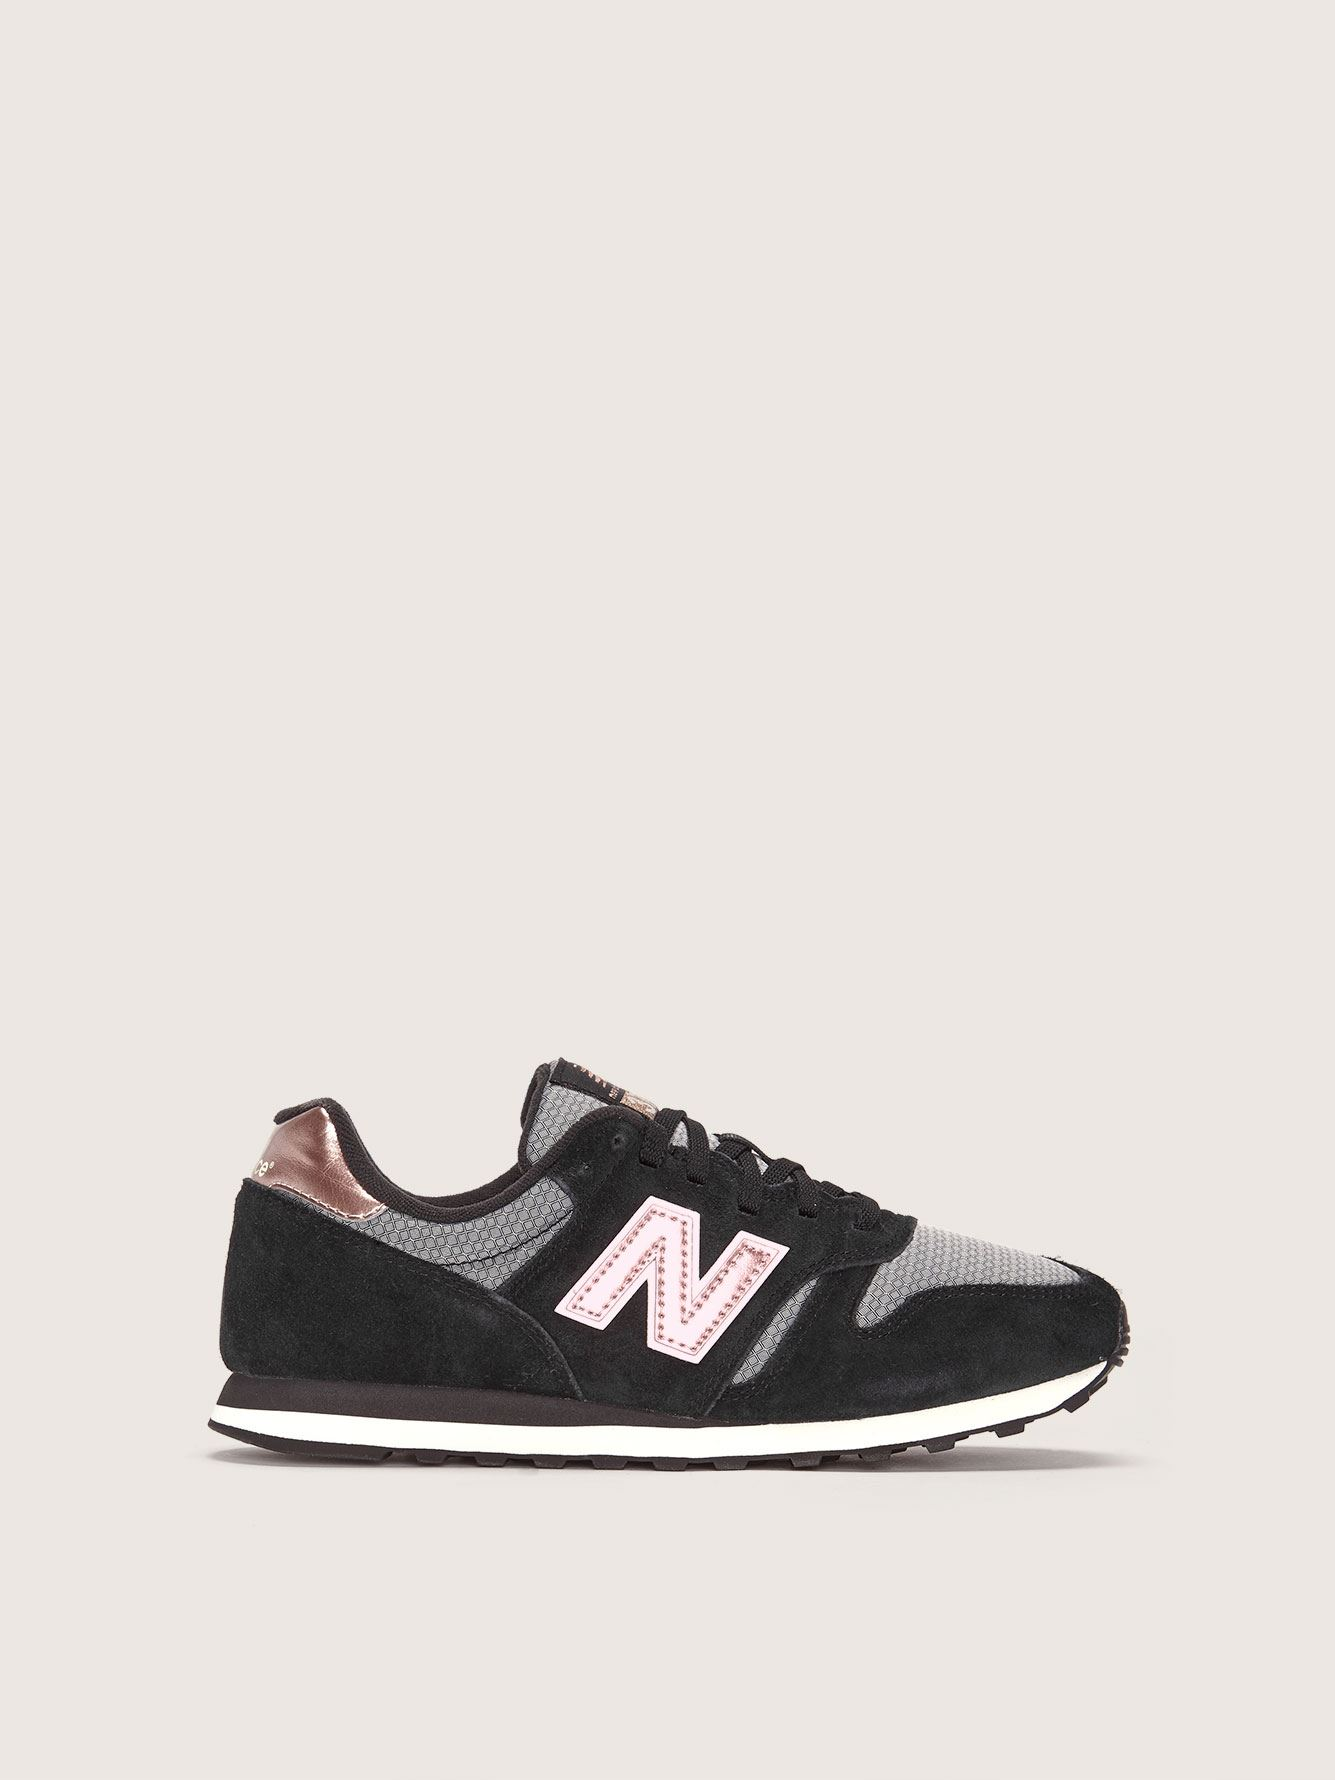 Wide Width Vintage Lifestyle Sneaker - New Balance